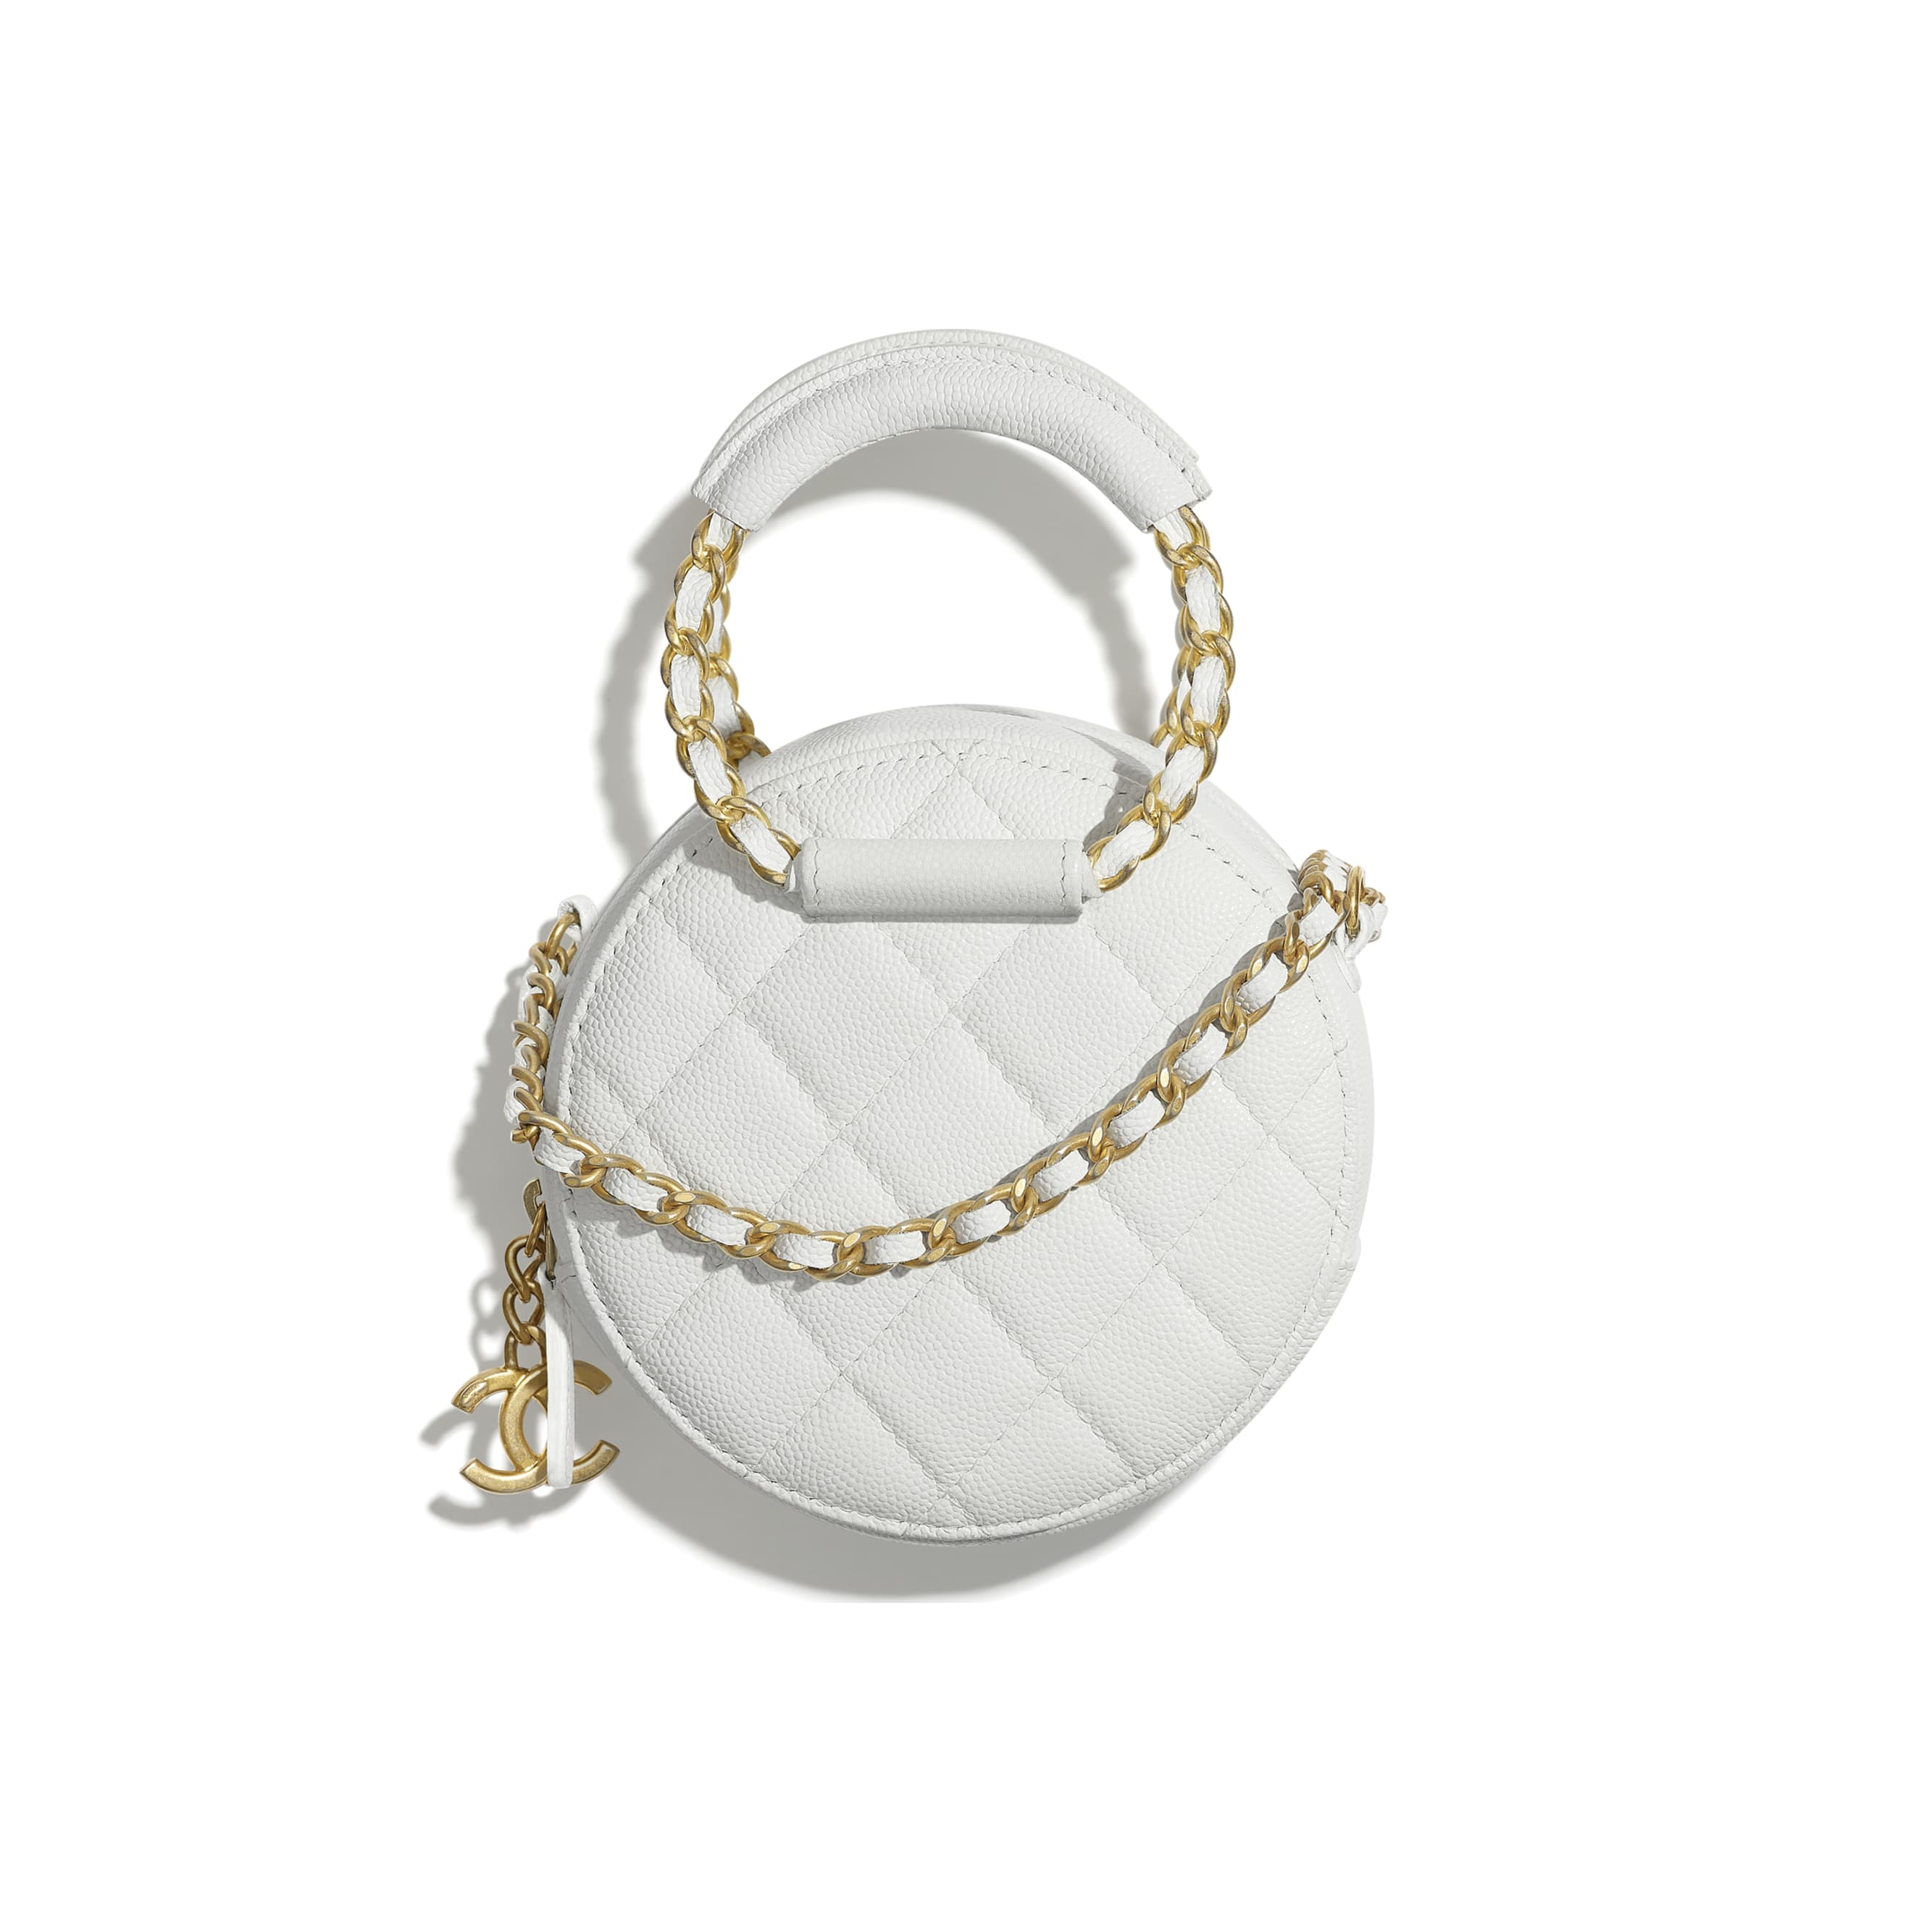 Clutch With Chain - White - Grained Shiny Calfskin & Gold-Tone Metal - Default view - see standard sized version